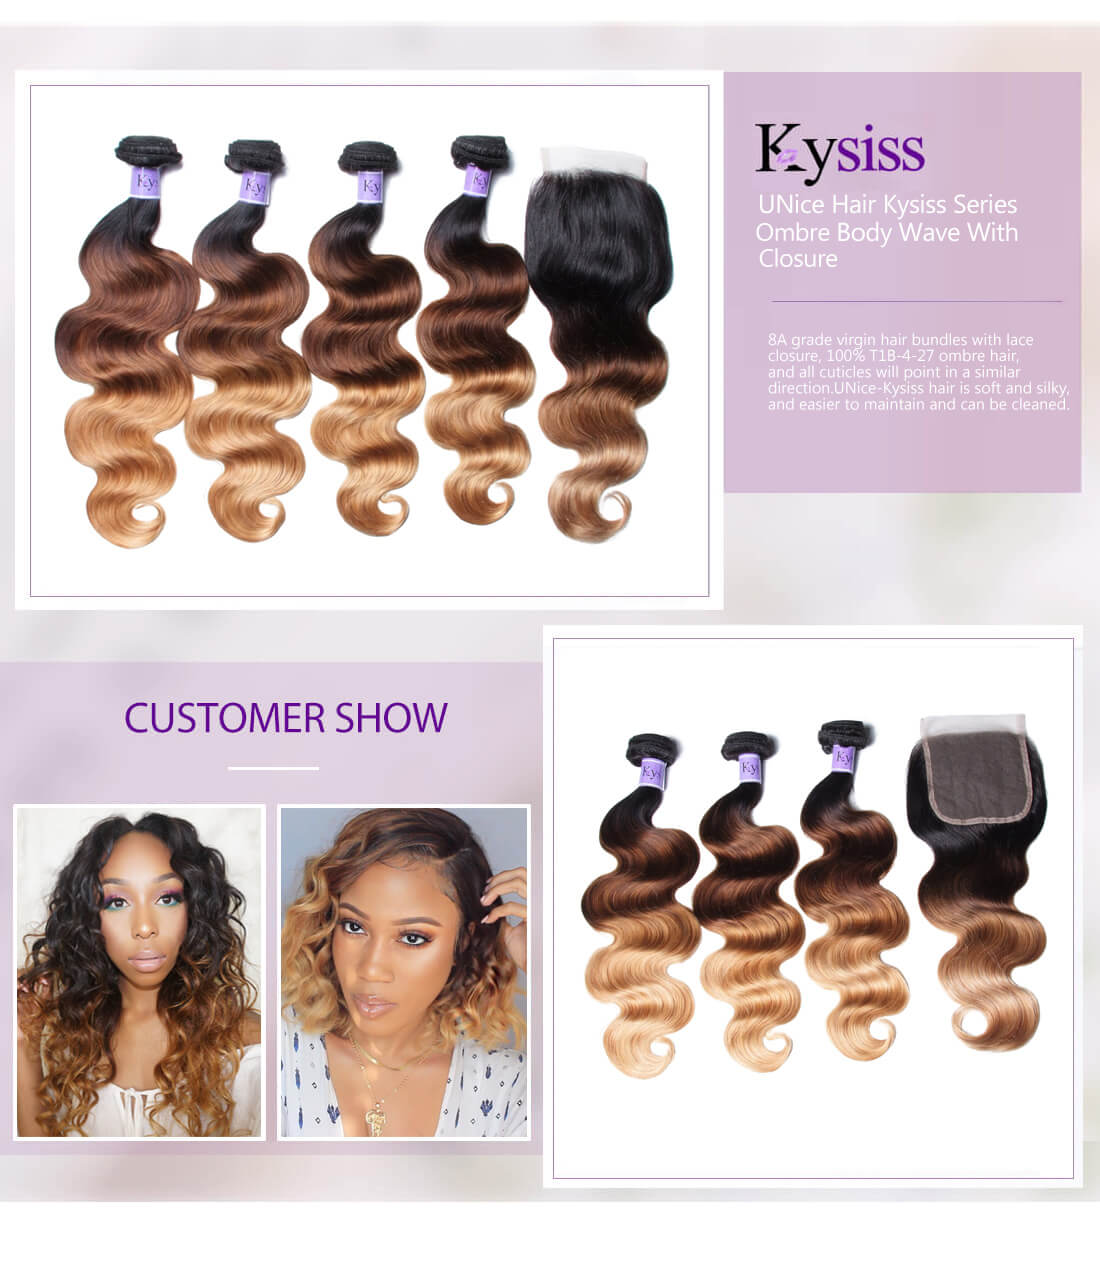 UNice Hair Kysiss Series Ombre Body Wave With Closure